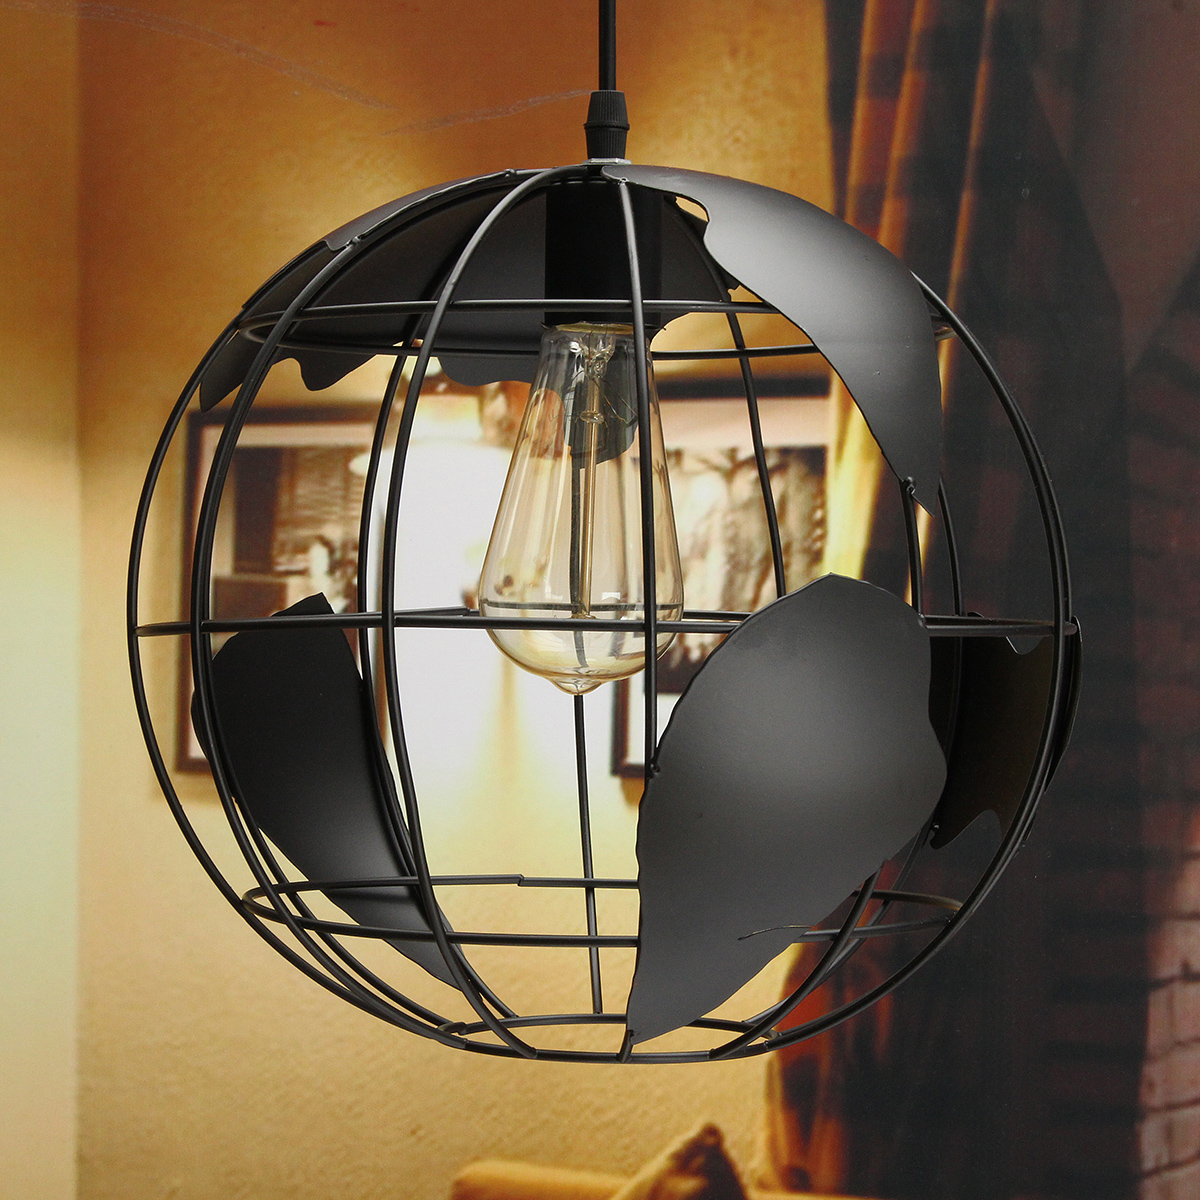 1pcs E27 Bulb Globe Earth Shaped Ceiling Lamp Hanging Pendant Light Plate Restaurant Coffee Indoor Lighting Decor Dome Light With The Most Up-To-Date Equipment And Techniques